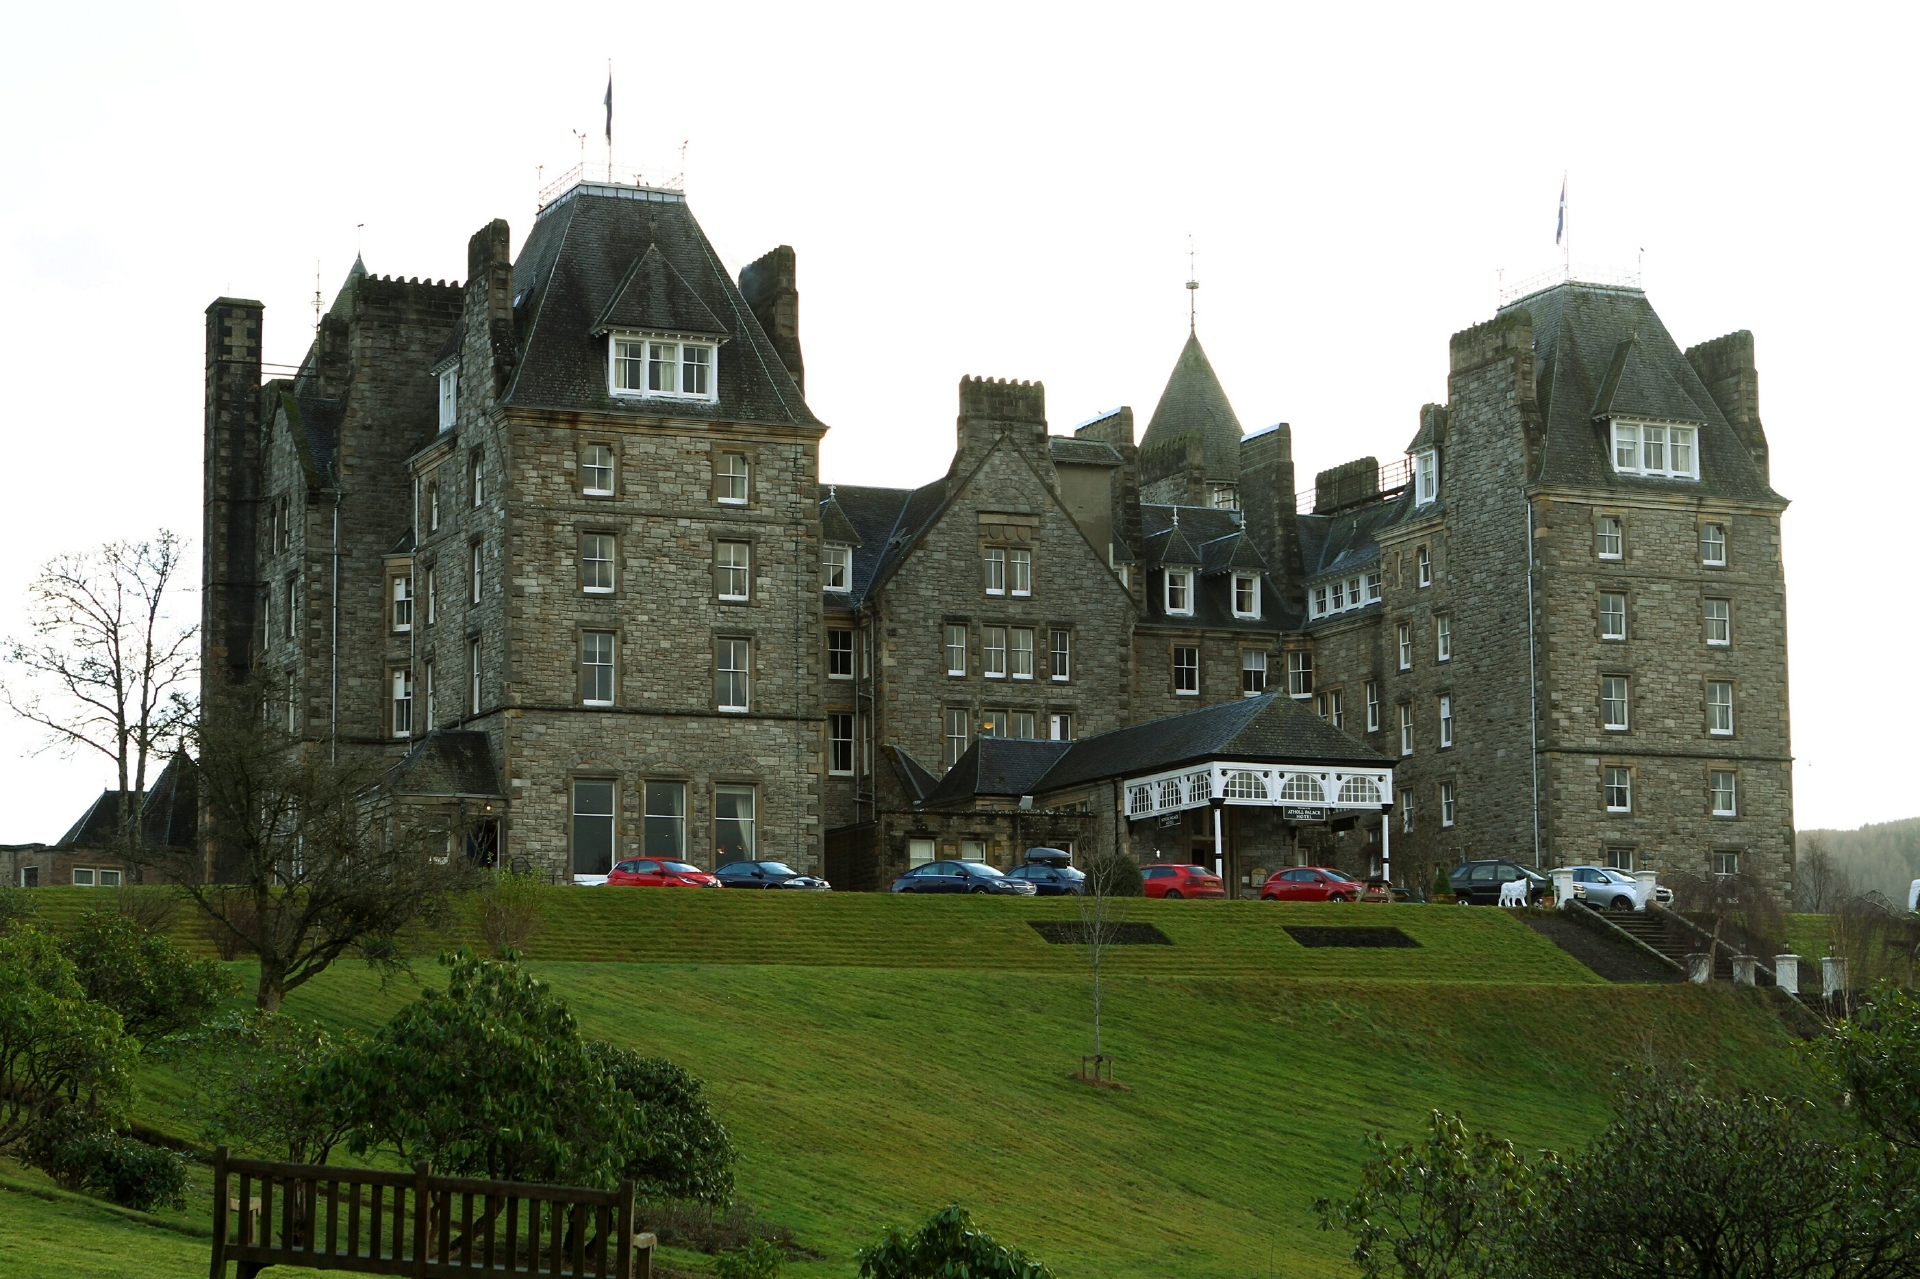 The Atholl Palace Hotel, Pitlochry.